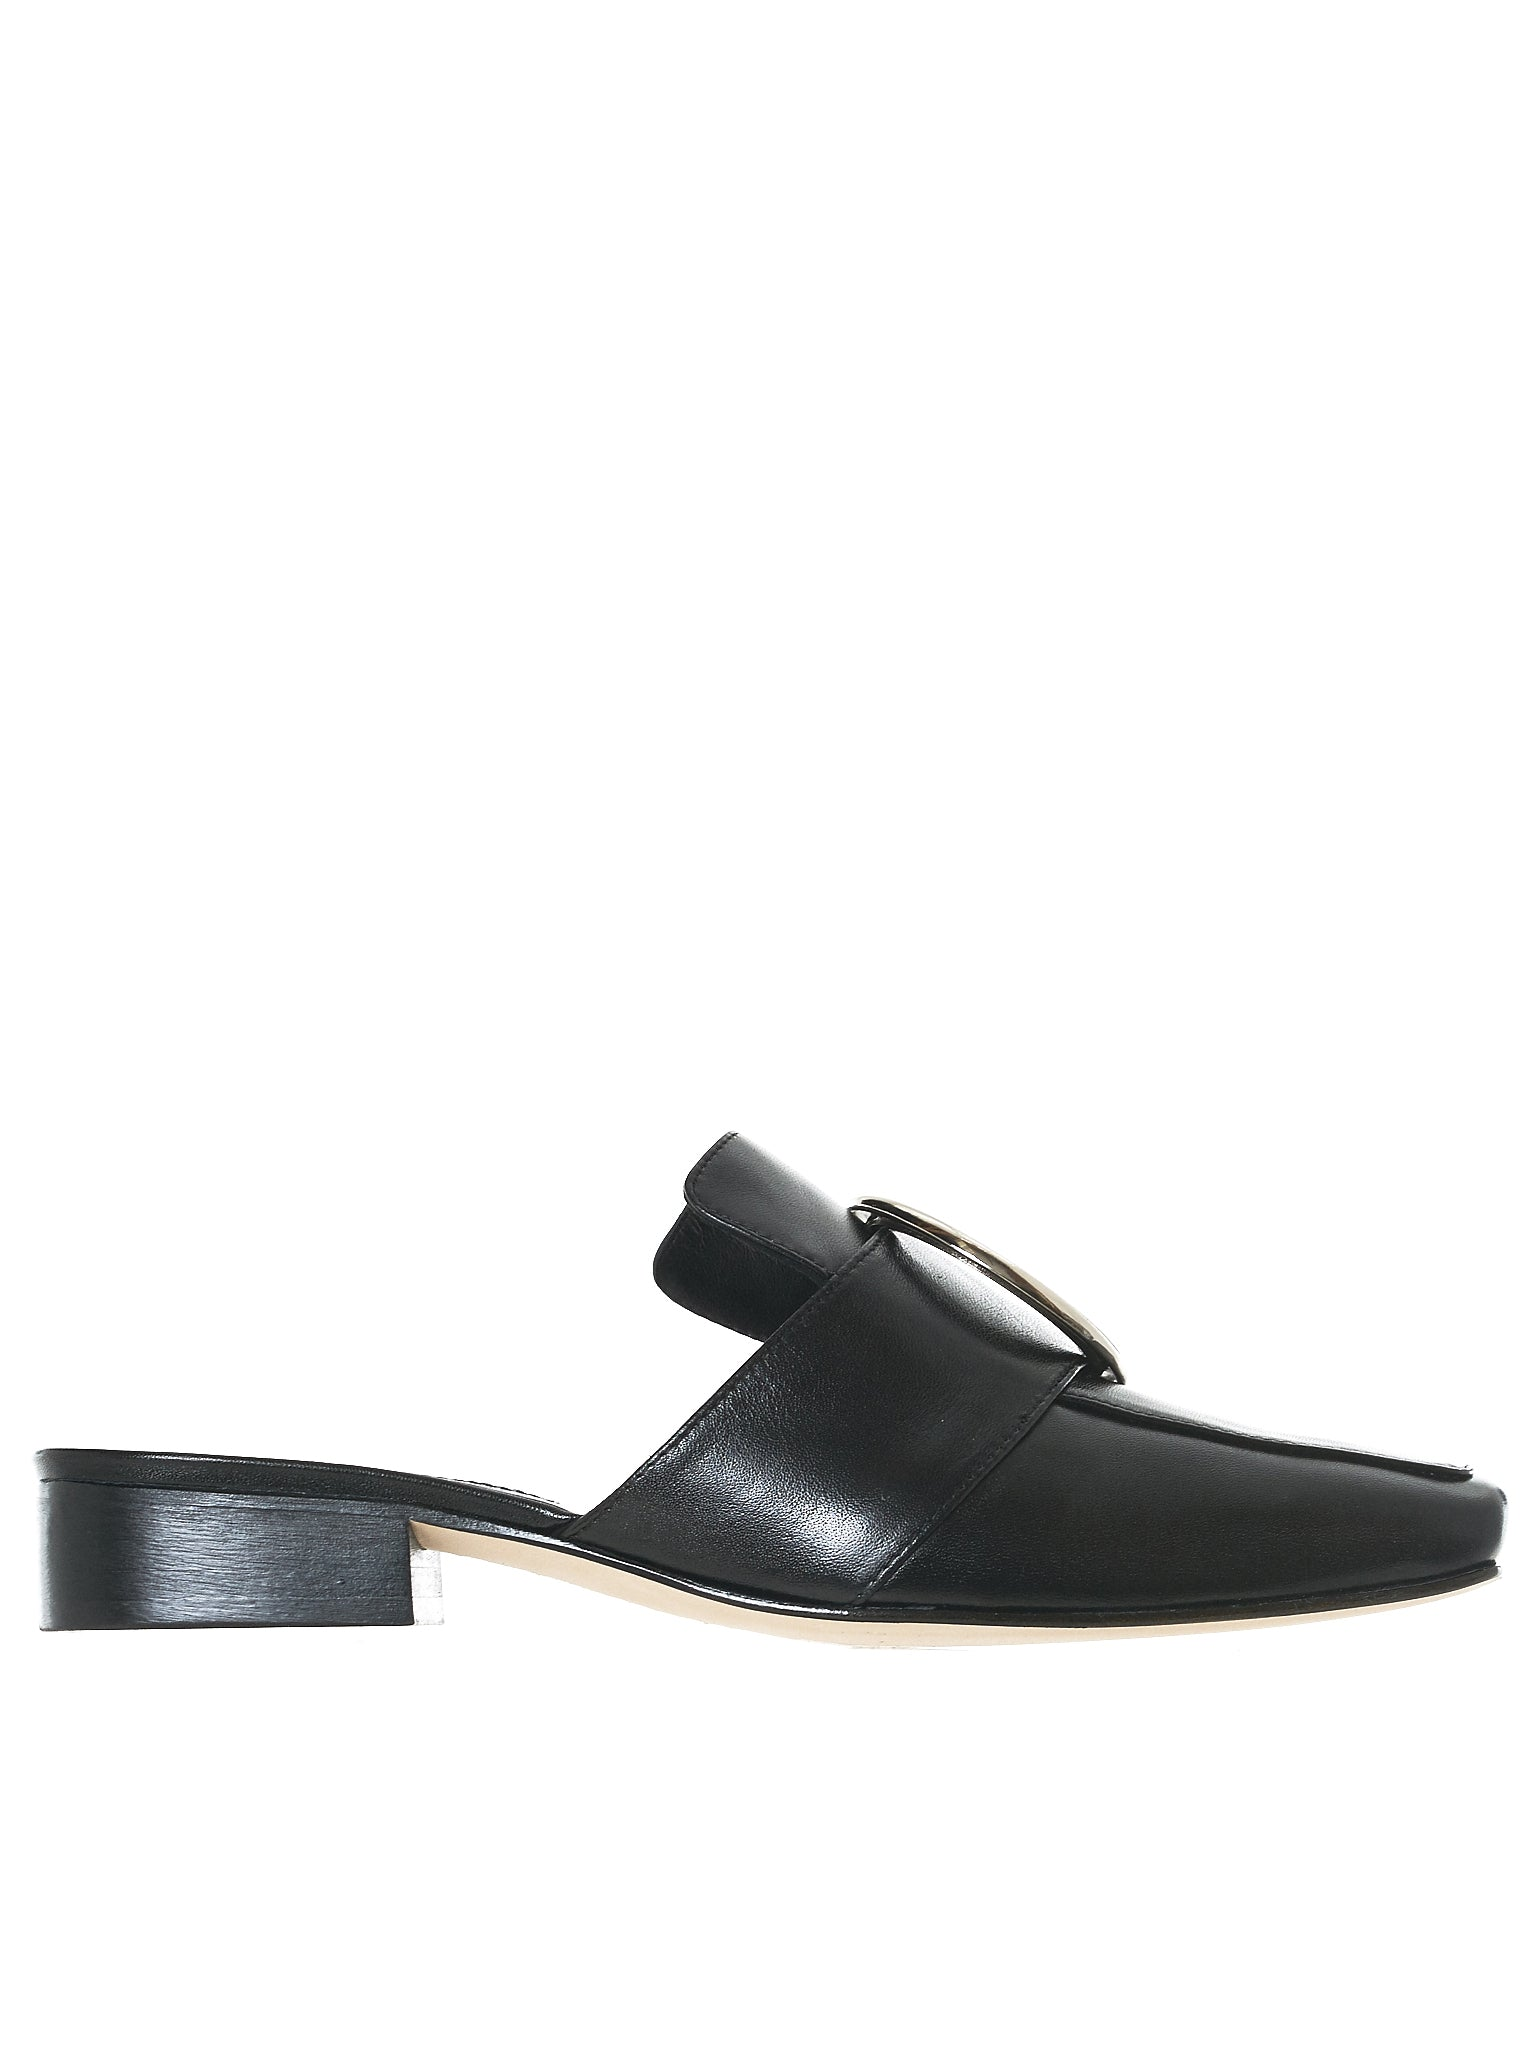 Petrol Leather Flats (PETROL-LEATHER-BLACK)